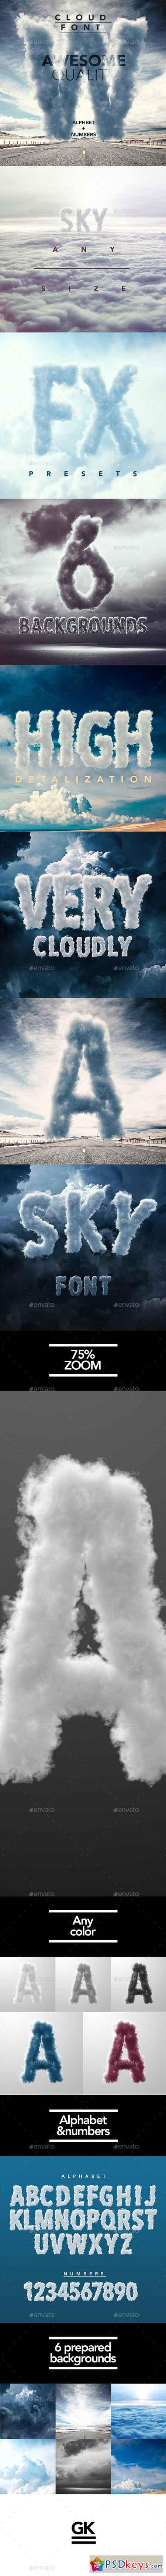 3D Sky Cloud Font Mock Up 12955563